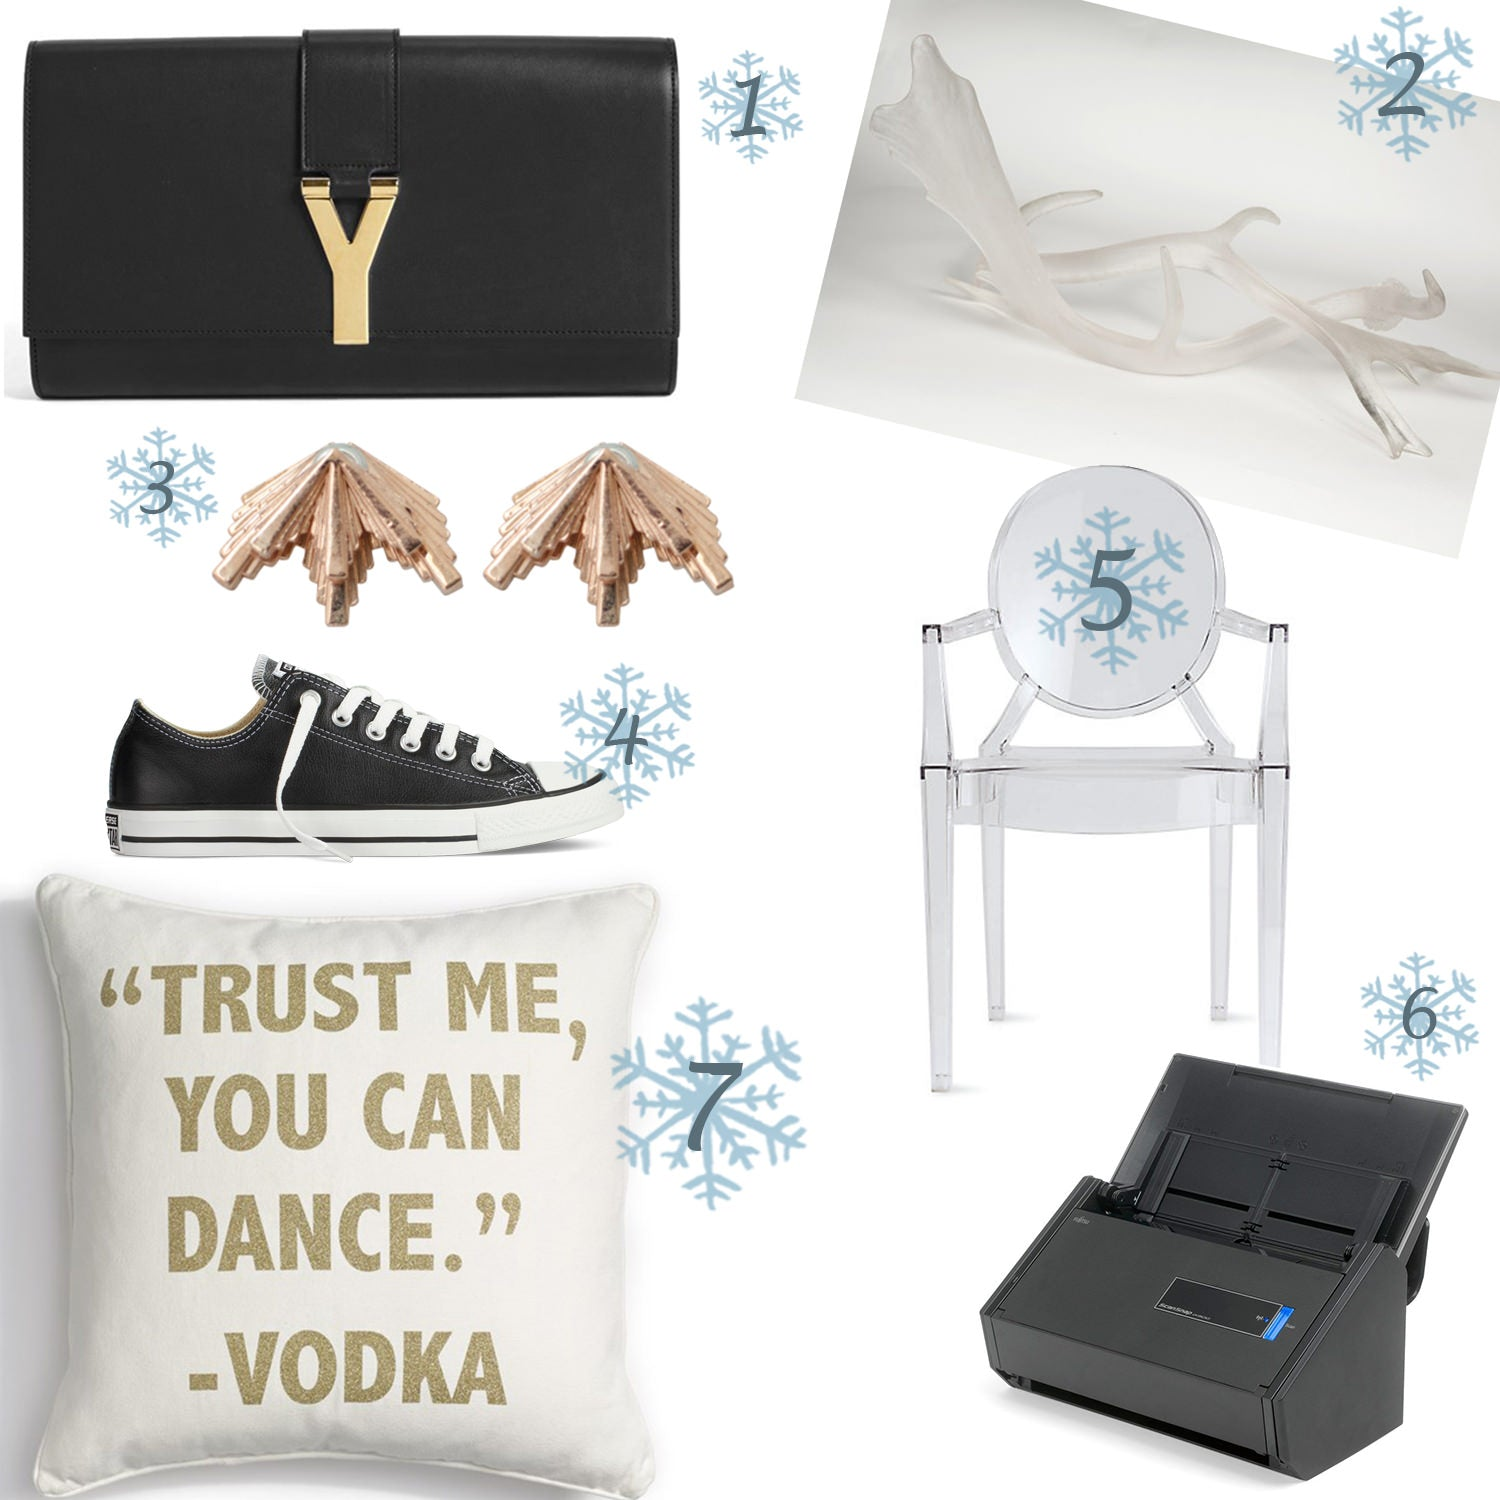 Saint Laurent Y Leather Clutch, Lucite deer antlers, deer antlers, converses, chucks, leather converses, black converses, starburst earrings, gold earrings, lucite chair, design within reach chair, vokda pillow, trust me you can dance vodka, trust me you can dance vodka pillow, printer, scanner, unique gift ideas for women, holiday gift guide 2014, best christmas gift ideas 2014